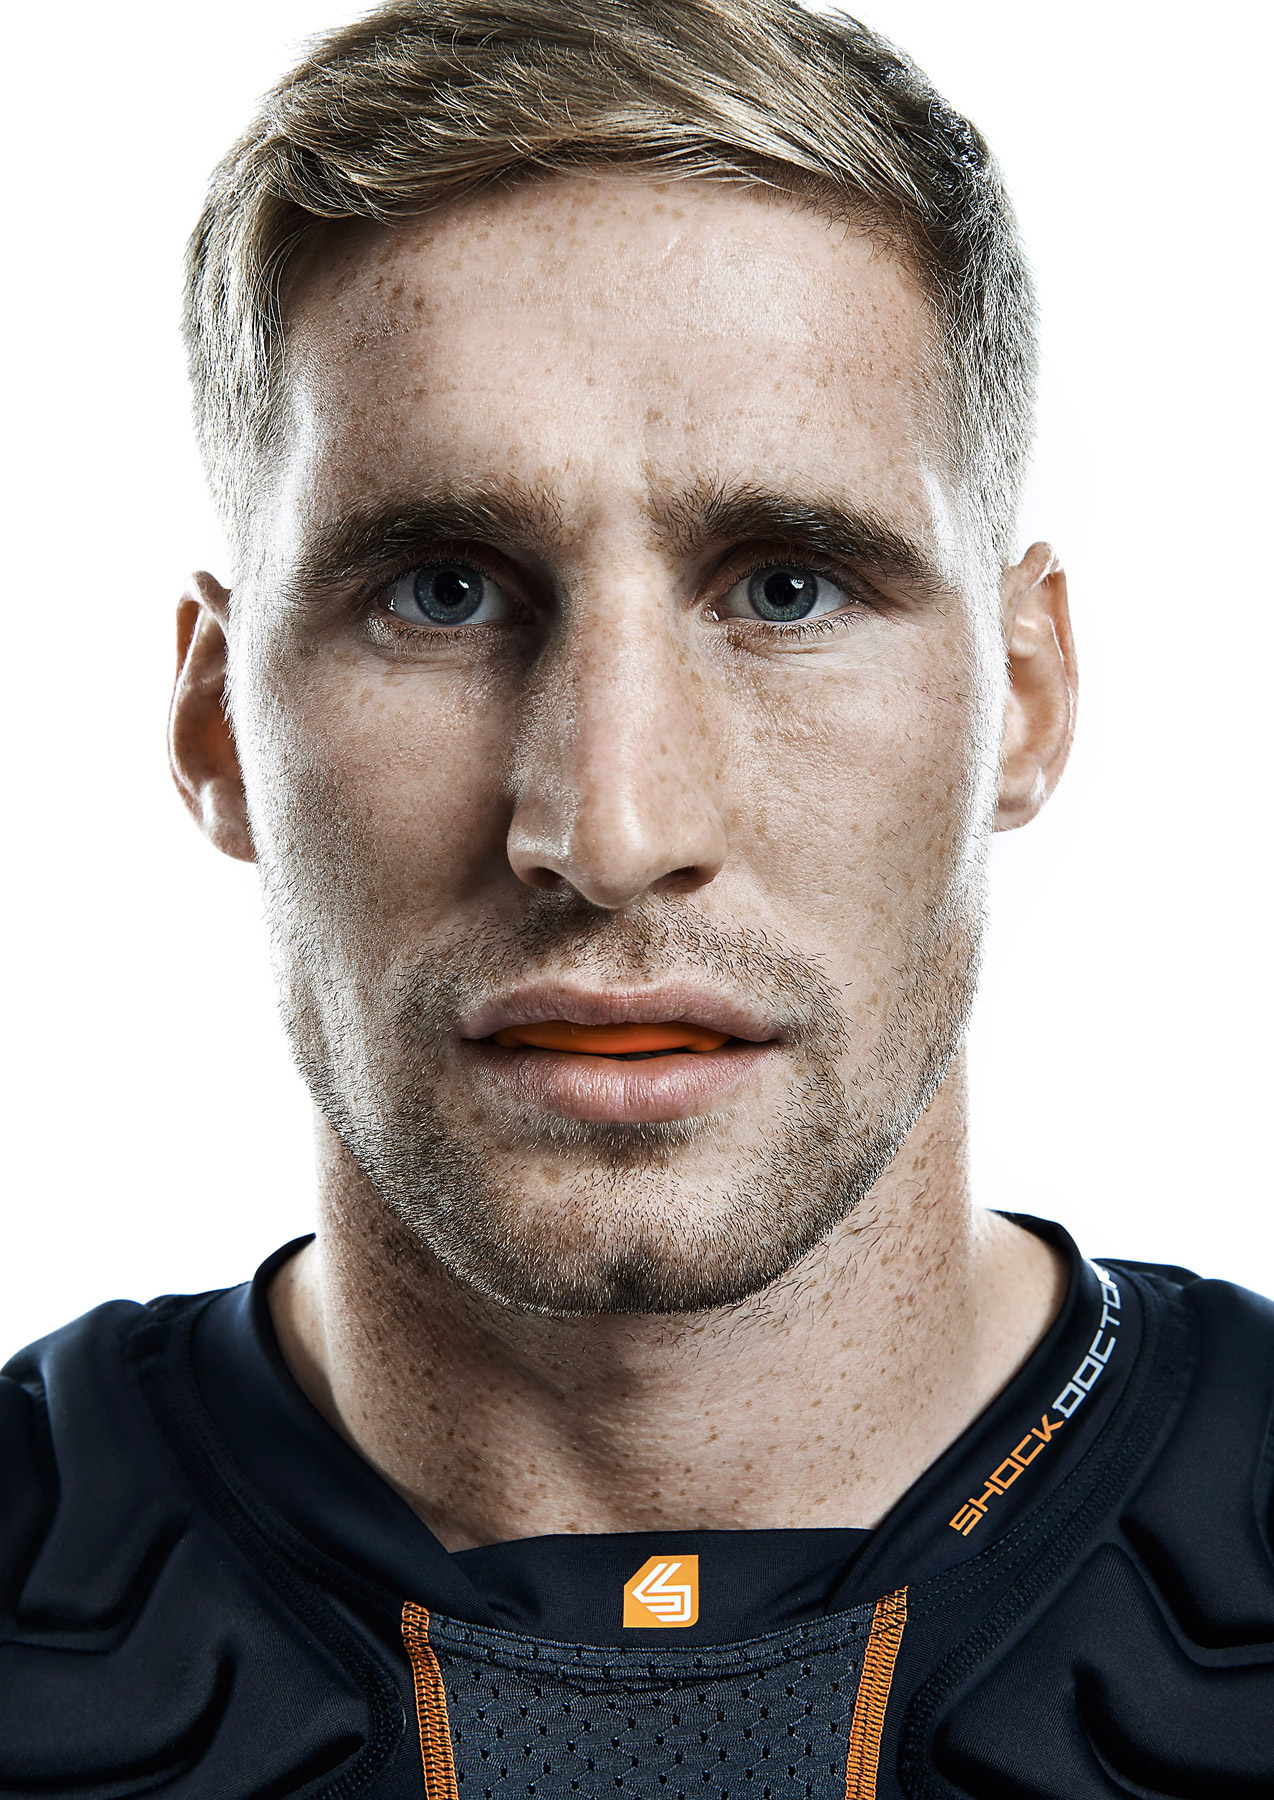 Close up of Sam Tomkins wearing a gum shield